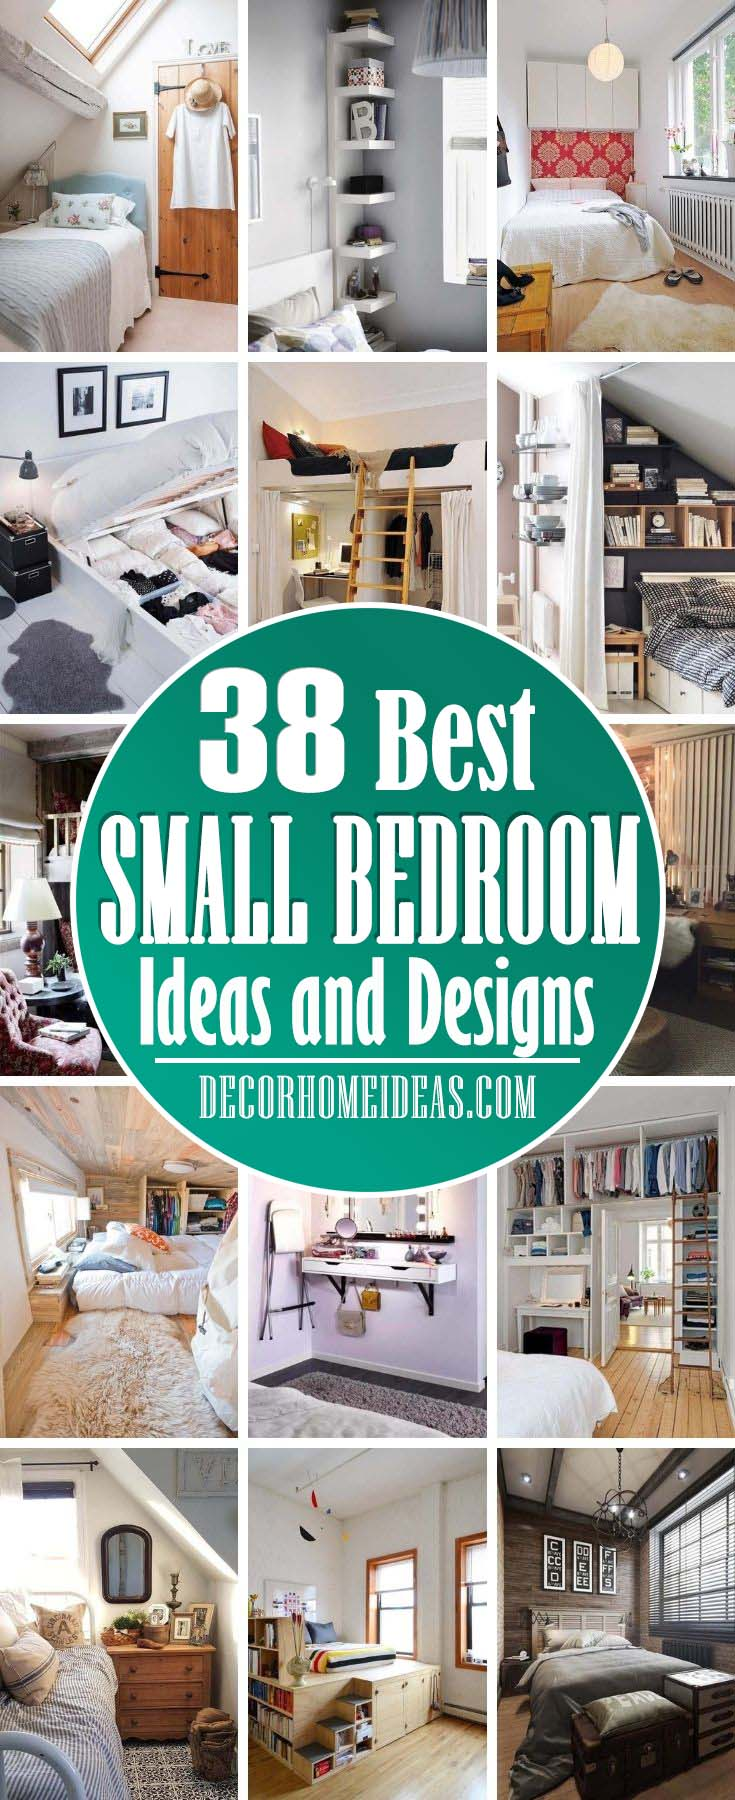 Best Small Bedroom Ideas And Designs. If you don't think you have enough space for a beautiful makeover, we have 38 small bedroom ideas to help you create a small bedroom that's big in style.